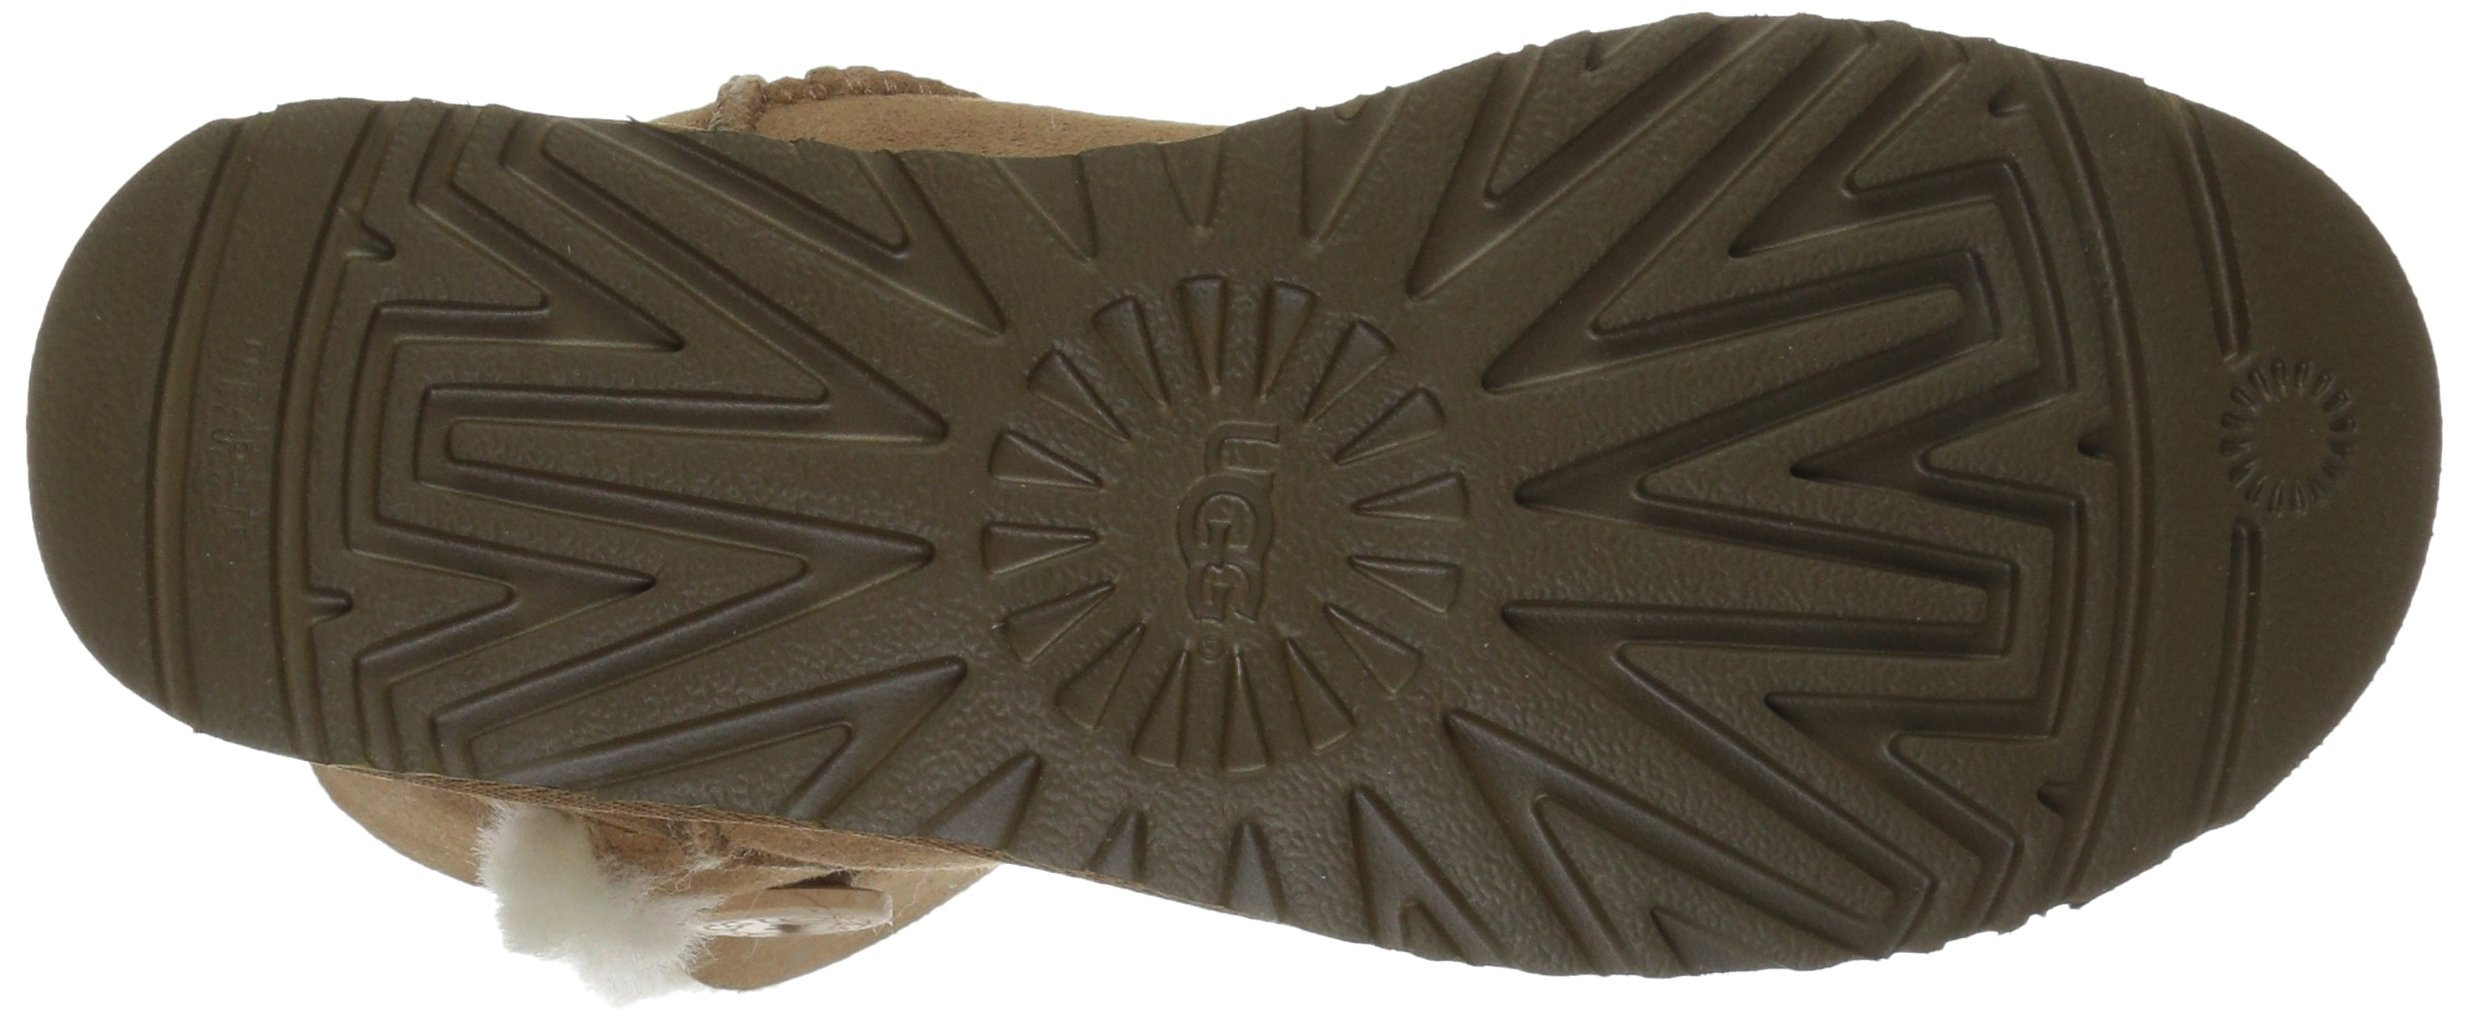 UGG Women's Bailey Button II Winter Boot, Chestnut, 8 B US by UGG (Image #3)